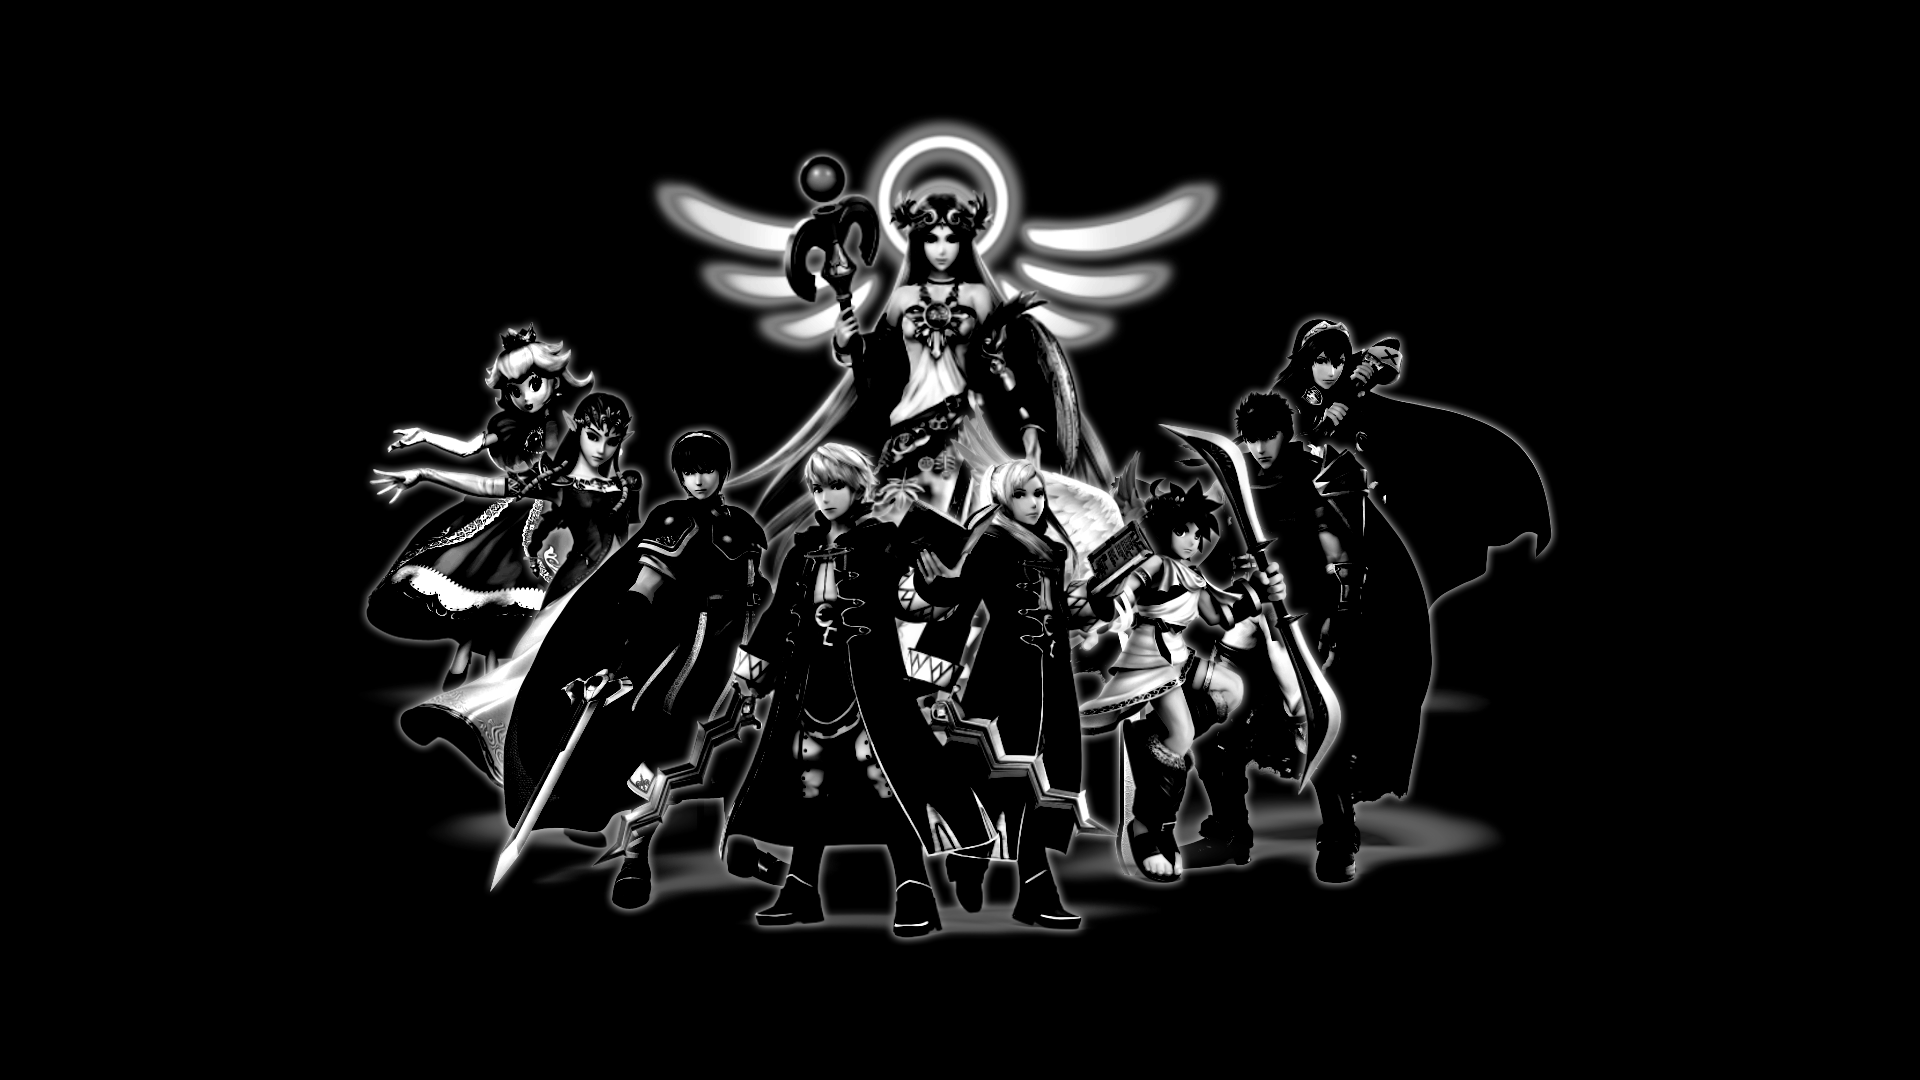 4 Background 1920x1080 BW By CookedEmil Super Smash Bros